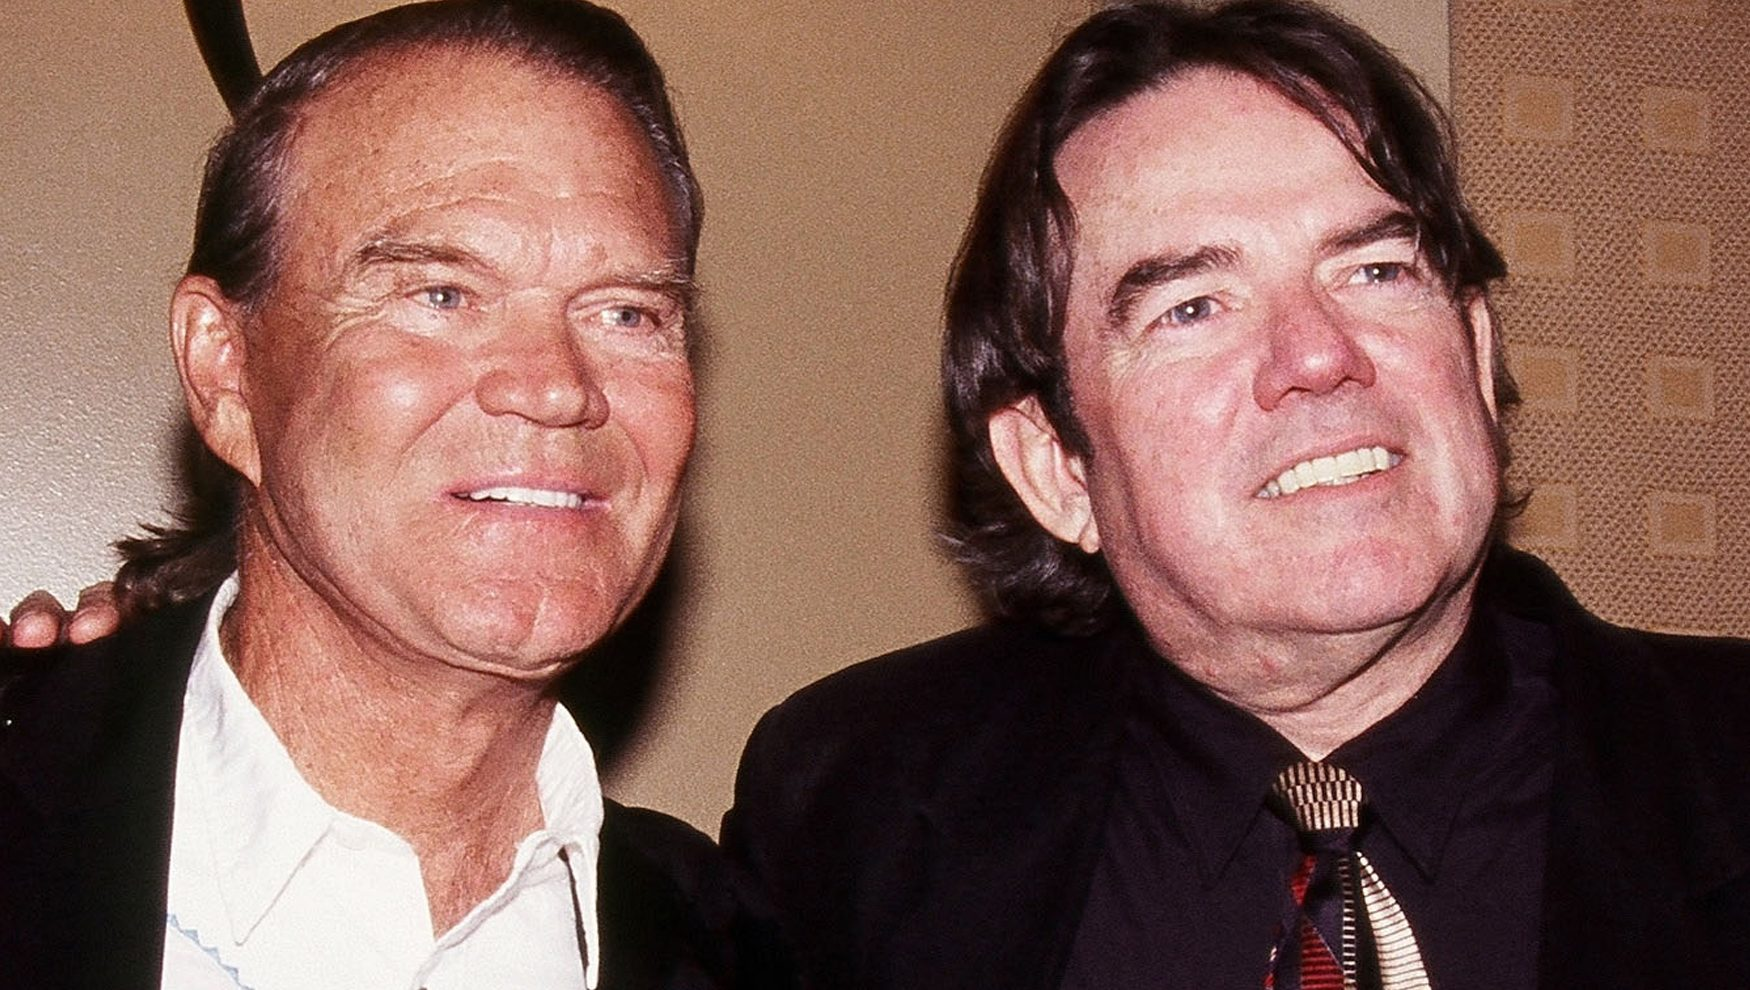 Glen Campbell and Jimmy Webb, pictured in New York in 2005